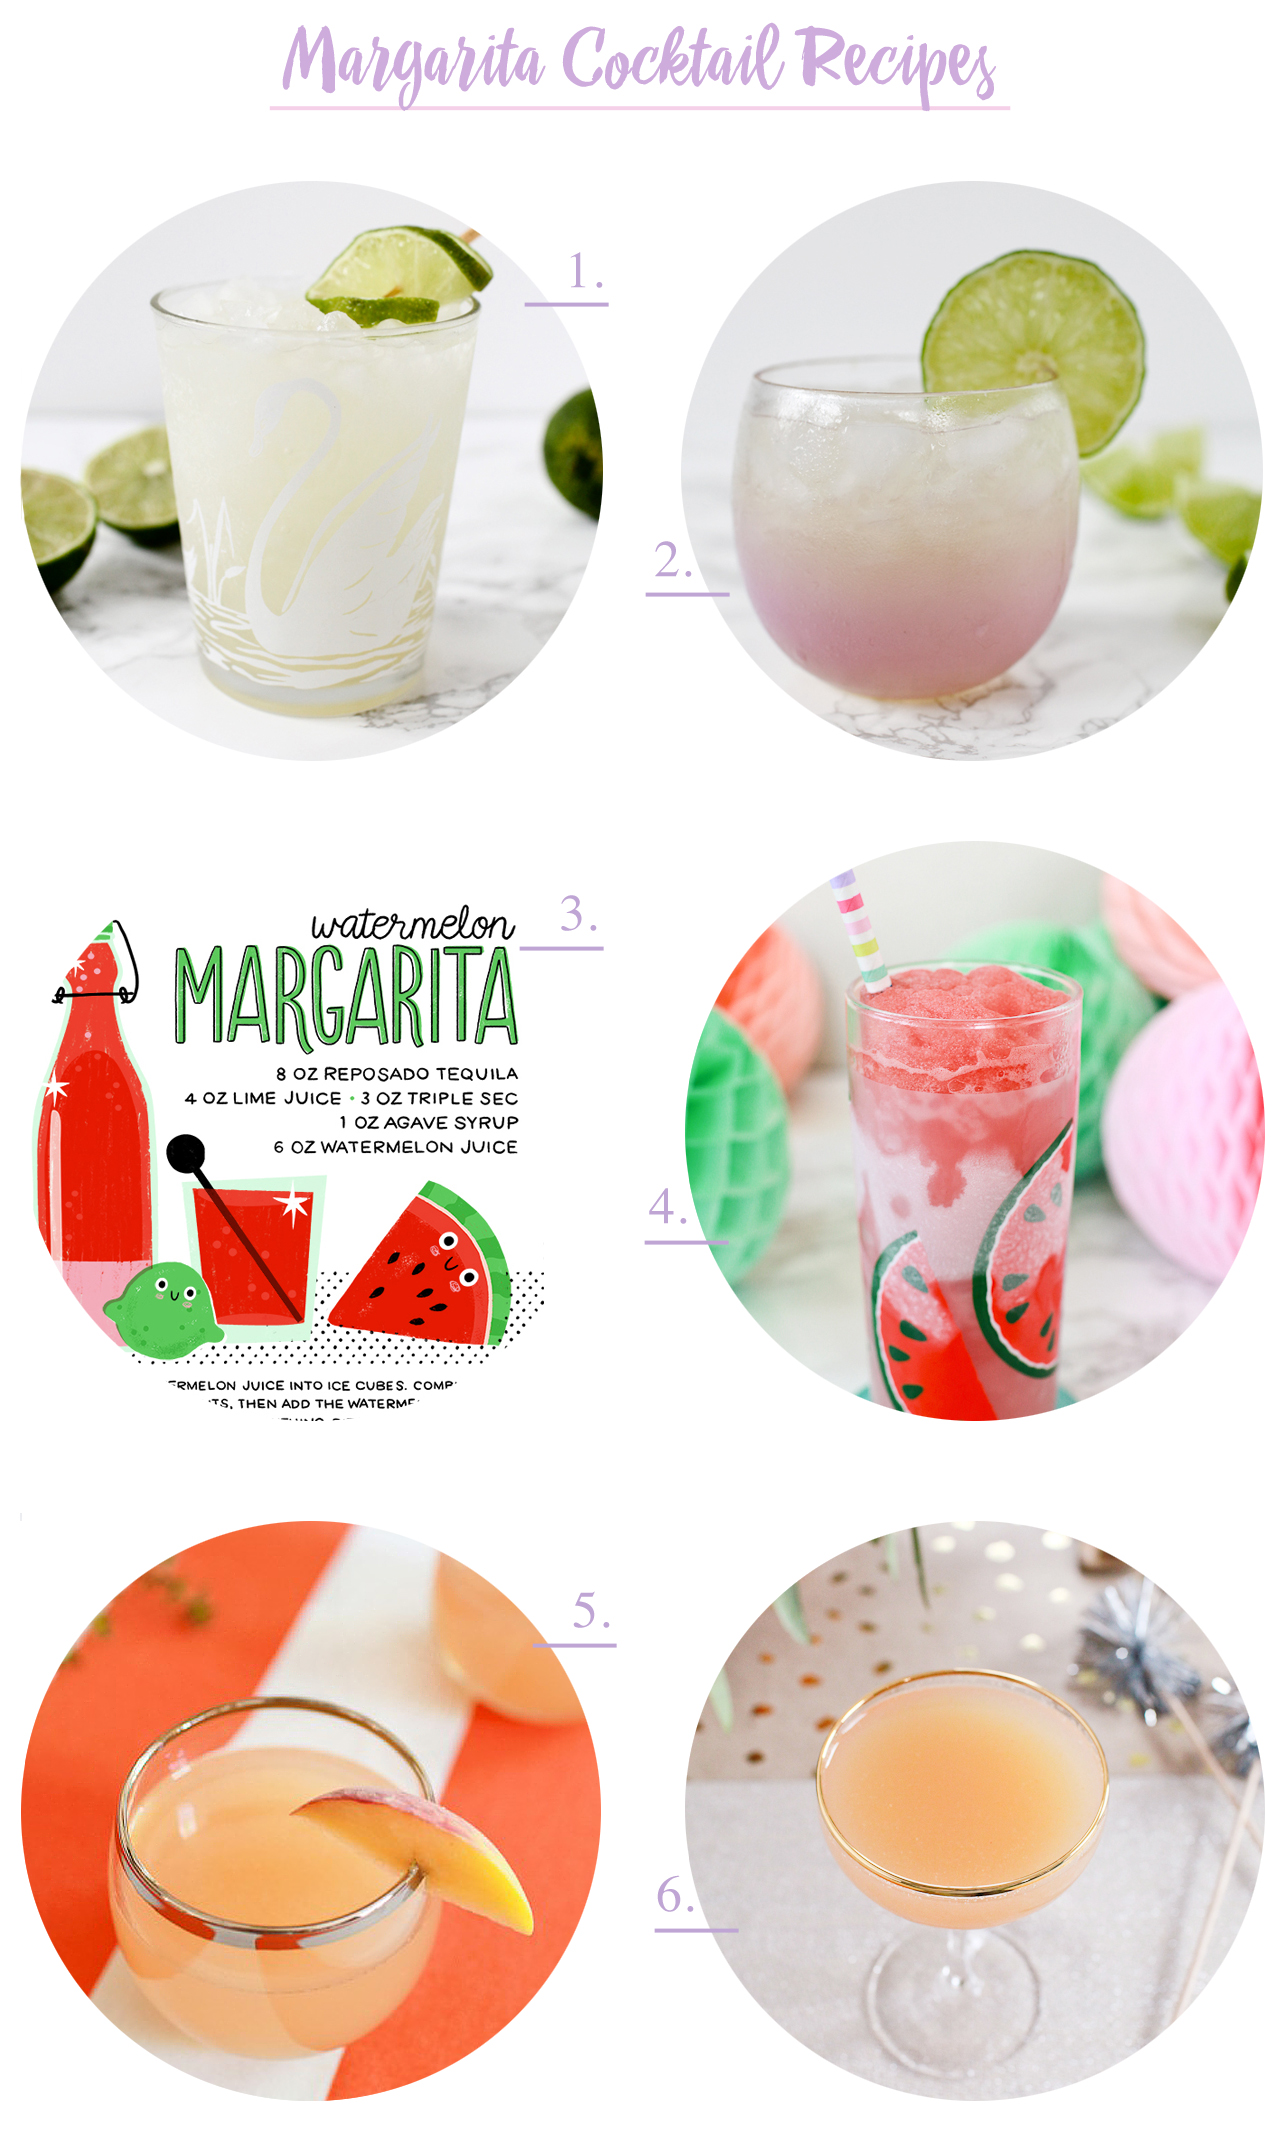 Margarita Cocktail Recipes